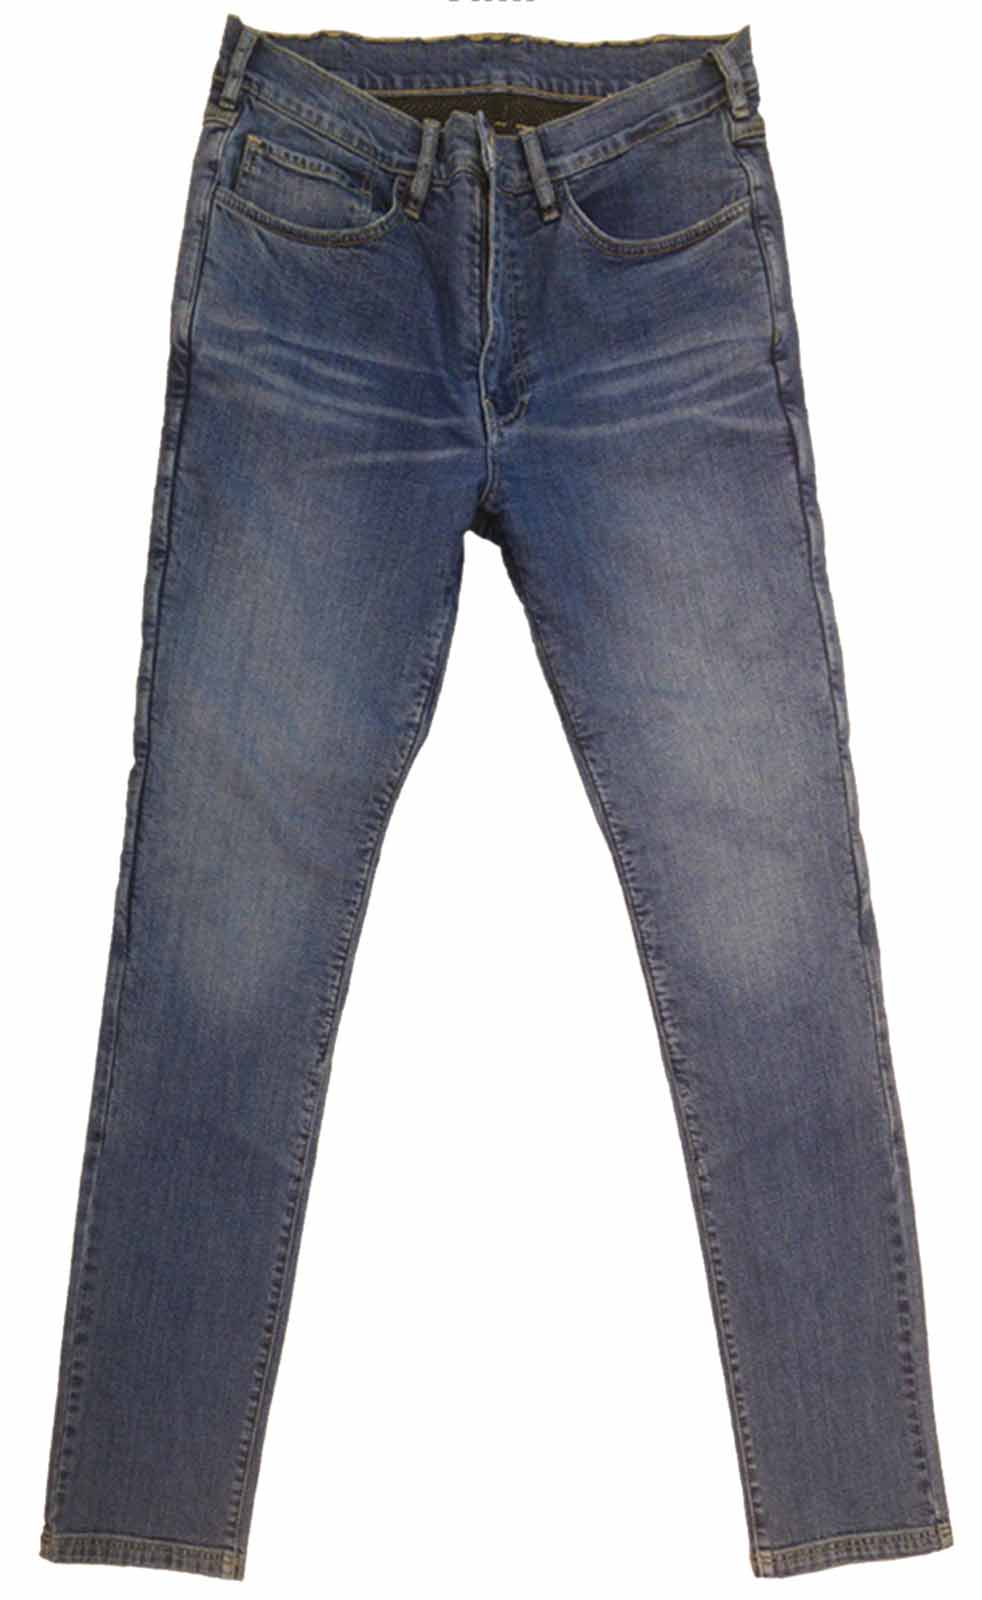 Bull - it SR6 Pacific Slim Fit Jeans